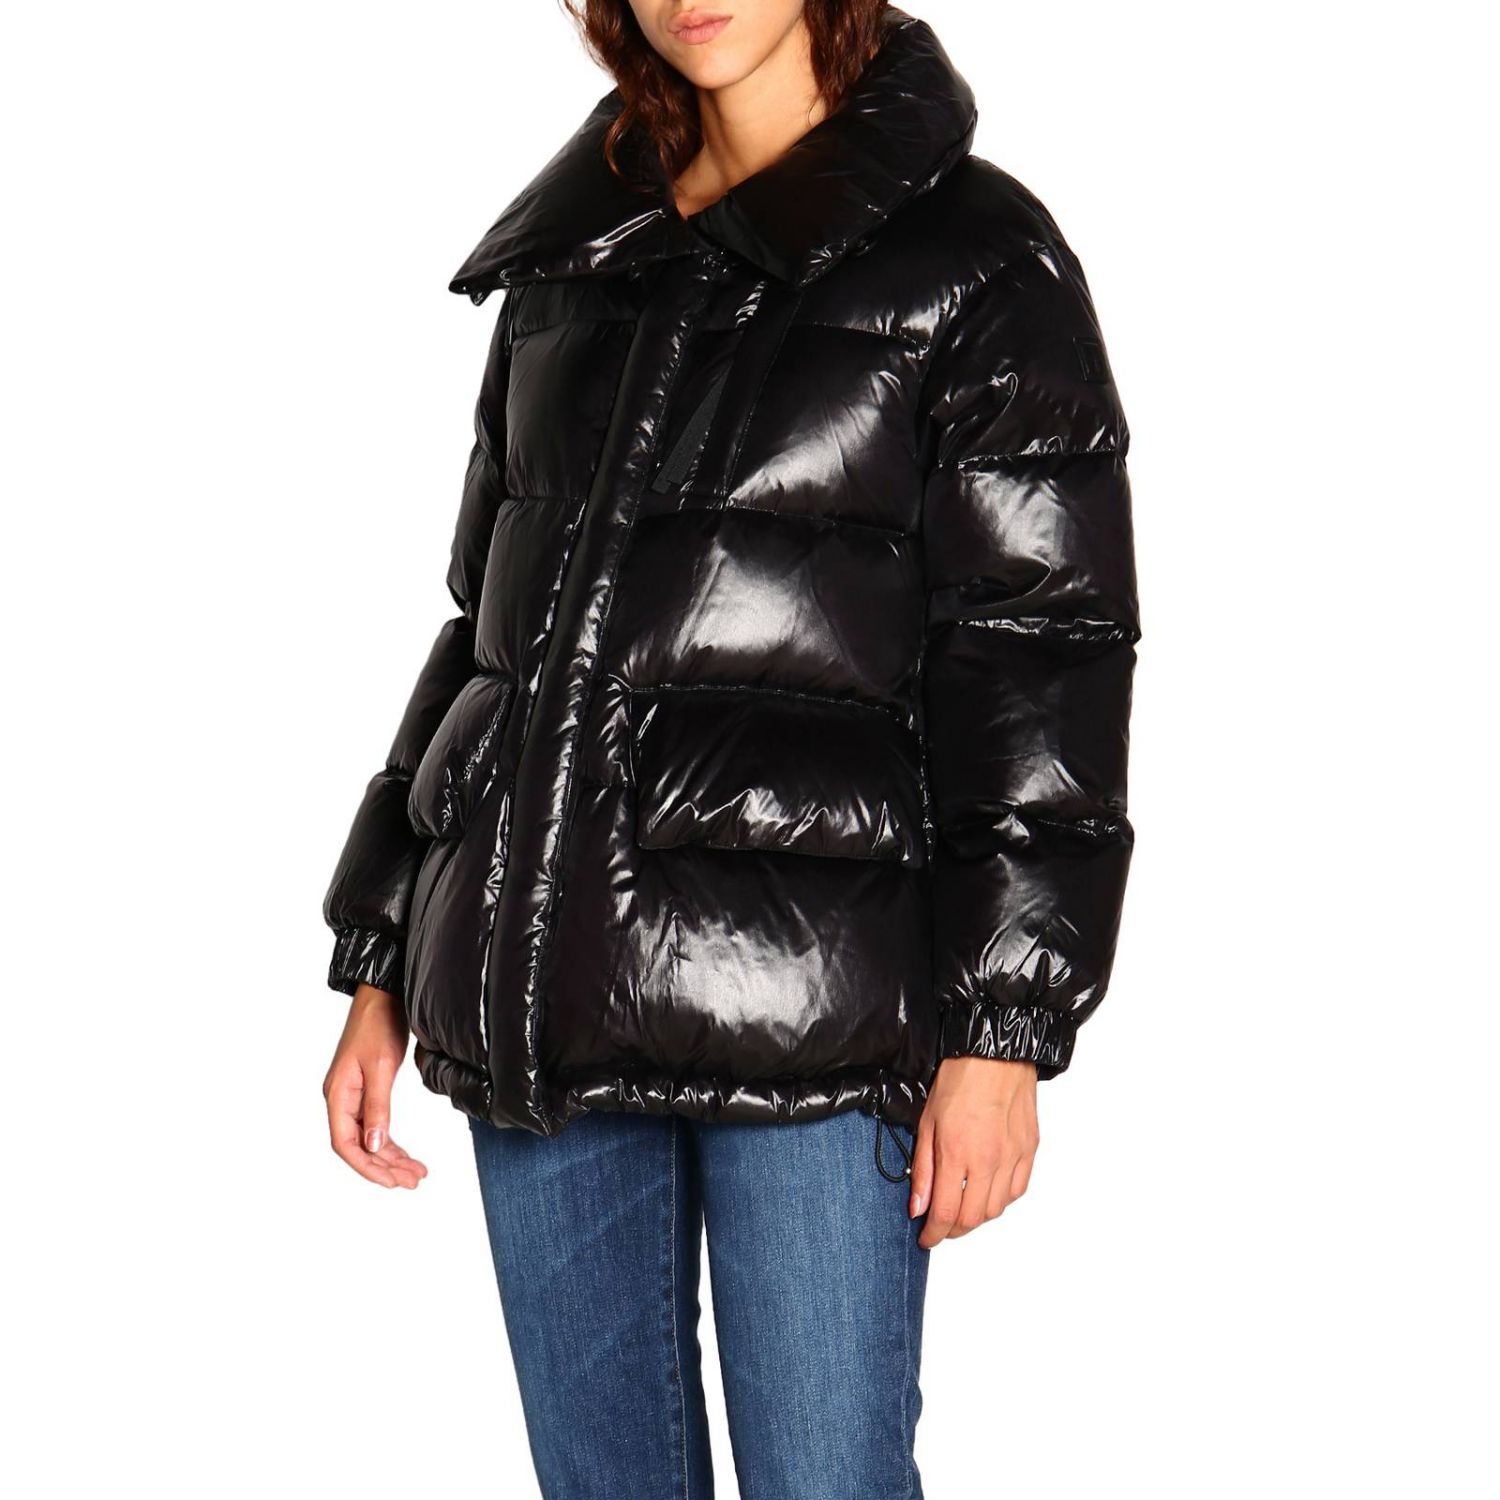 Giacca donna Woolrich nero 4